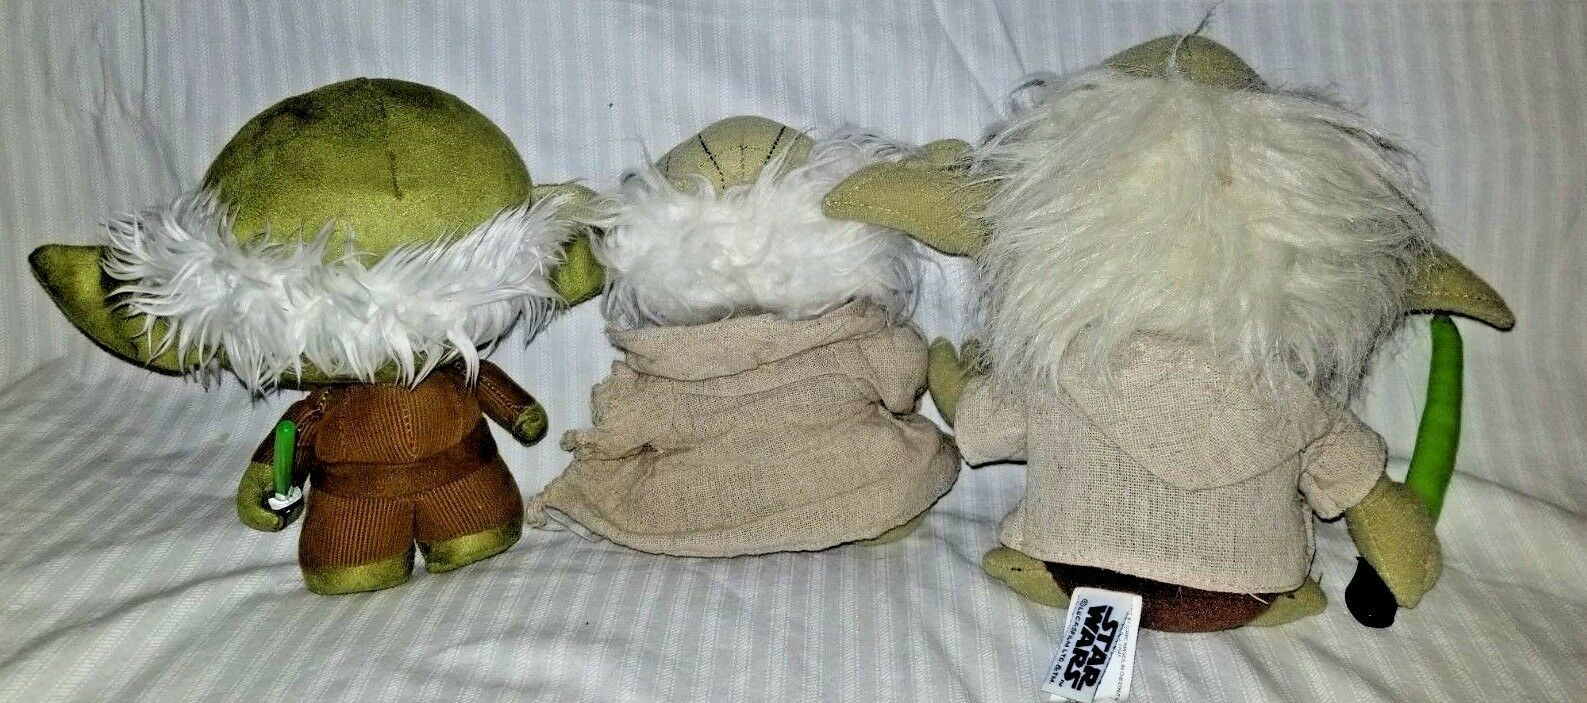 Star Wars Yoda Plush Dolls. Lot of 3 image 2